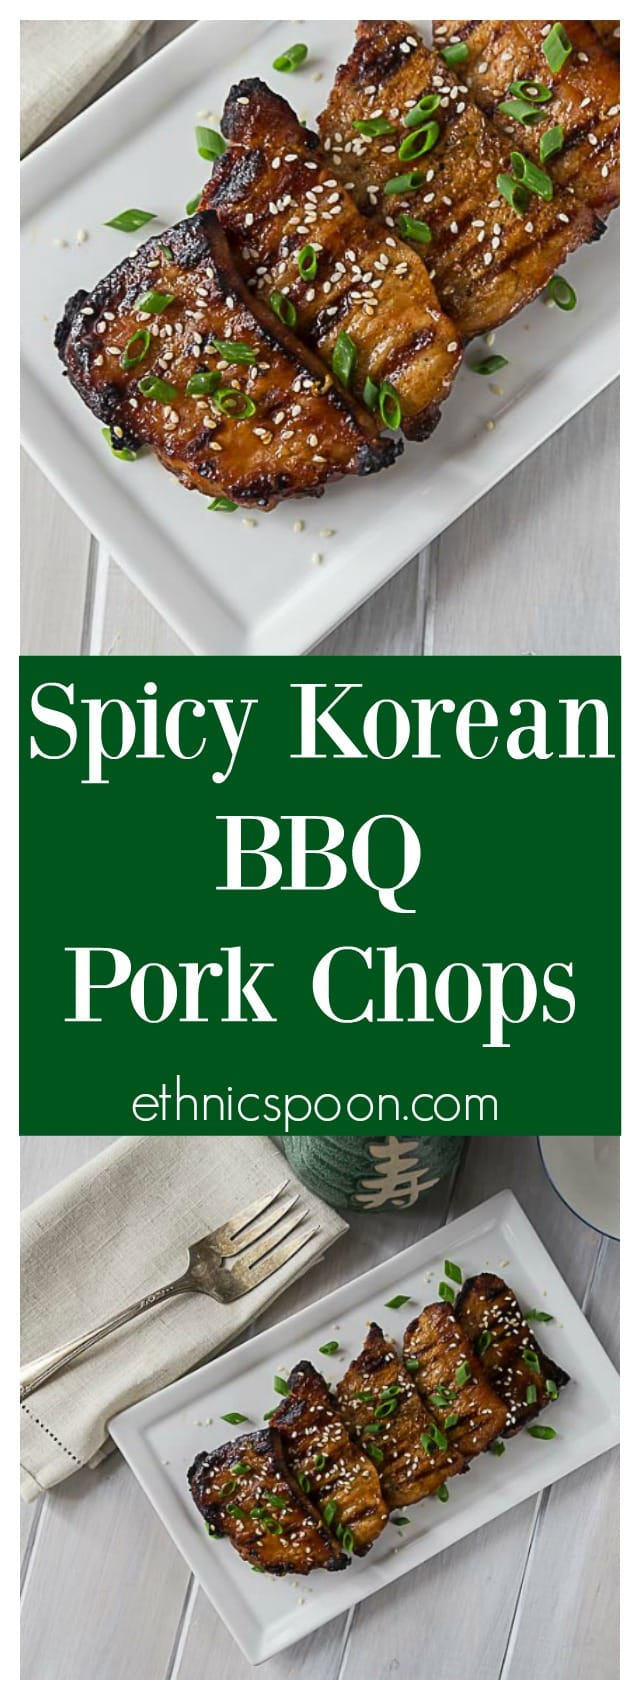 Korean barbecue pork chops analidas ethnic spoon tender and delicious grilled boneless pork chops in a spicy korean bbq sauce a quick forumfinder Gallery